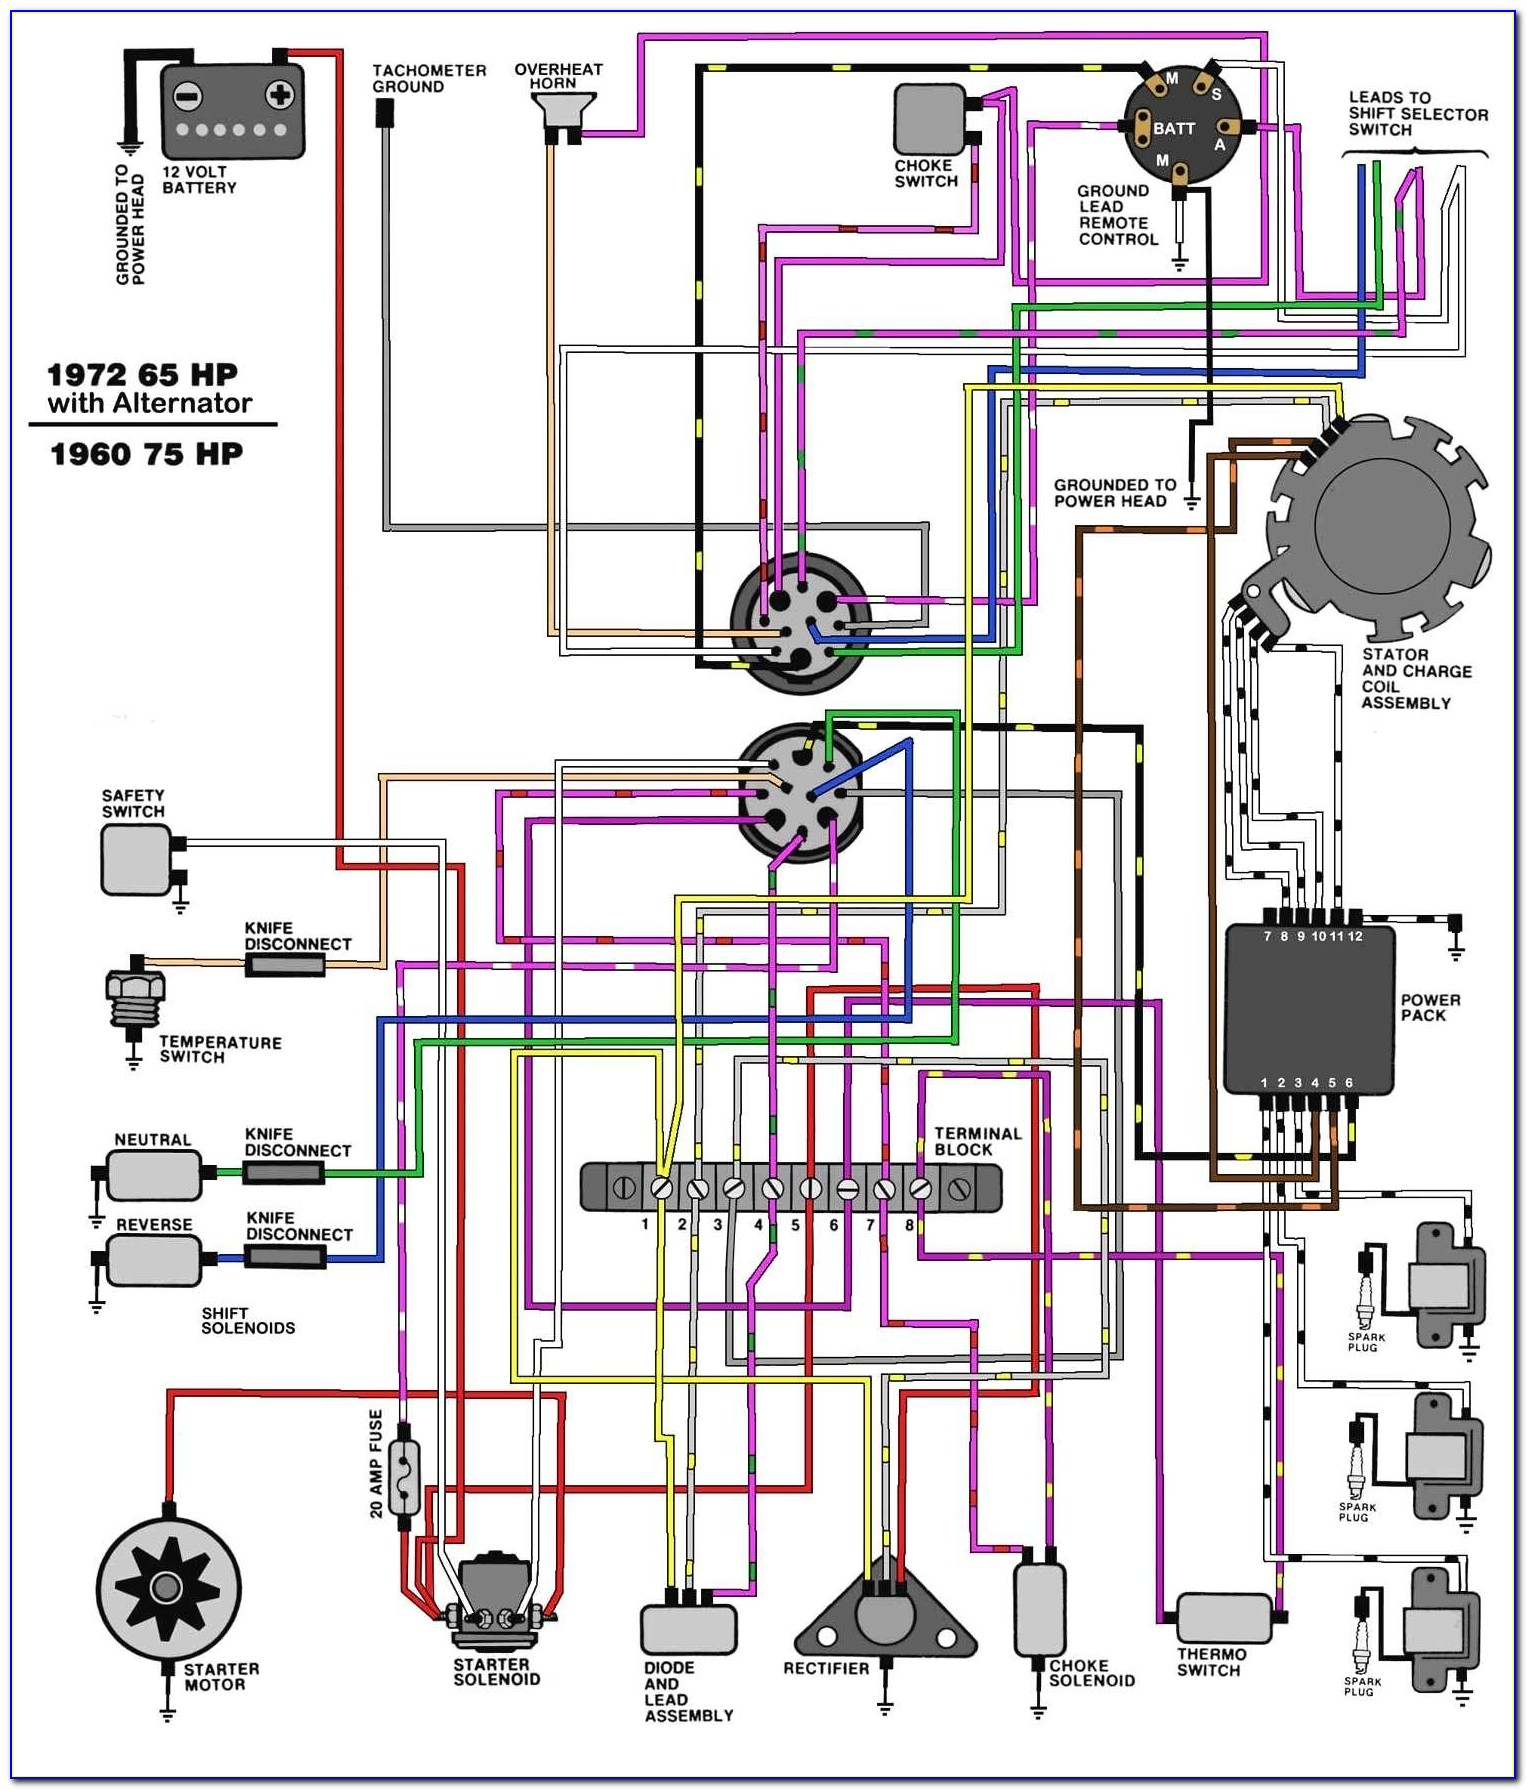 2004 Yamaha Road Star 1700 Wiring Diagram